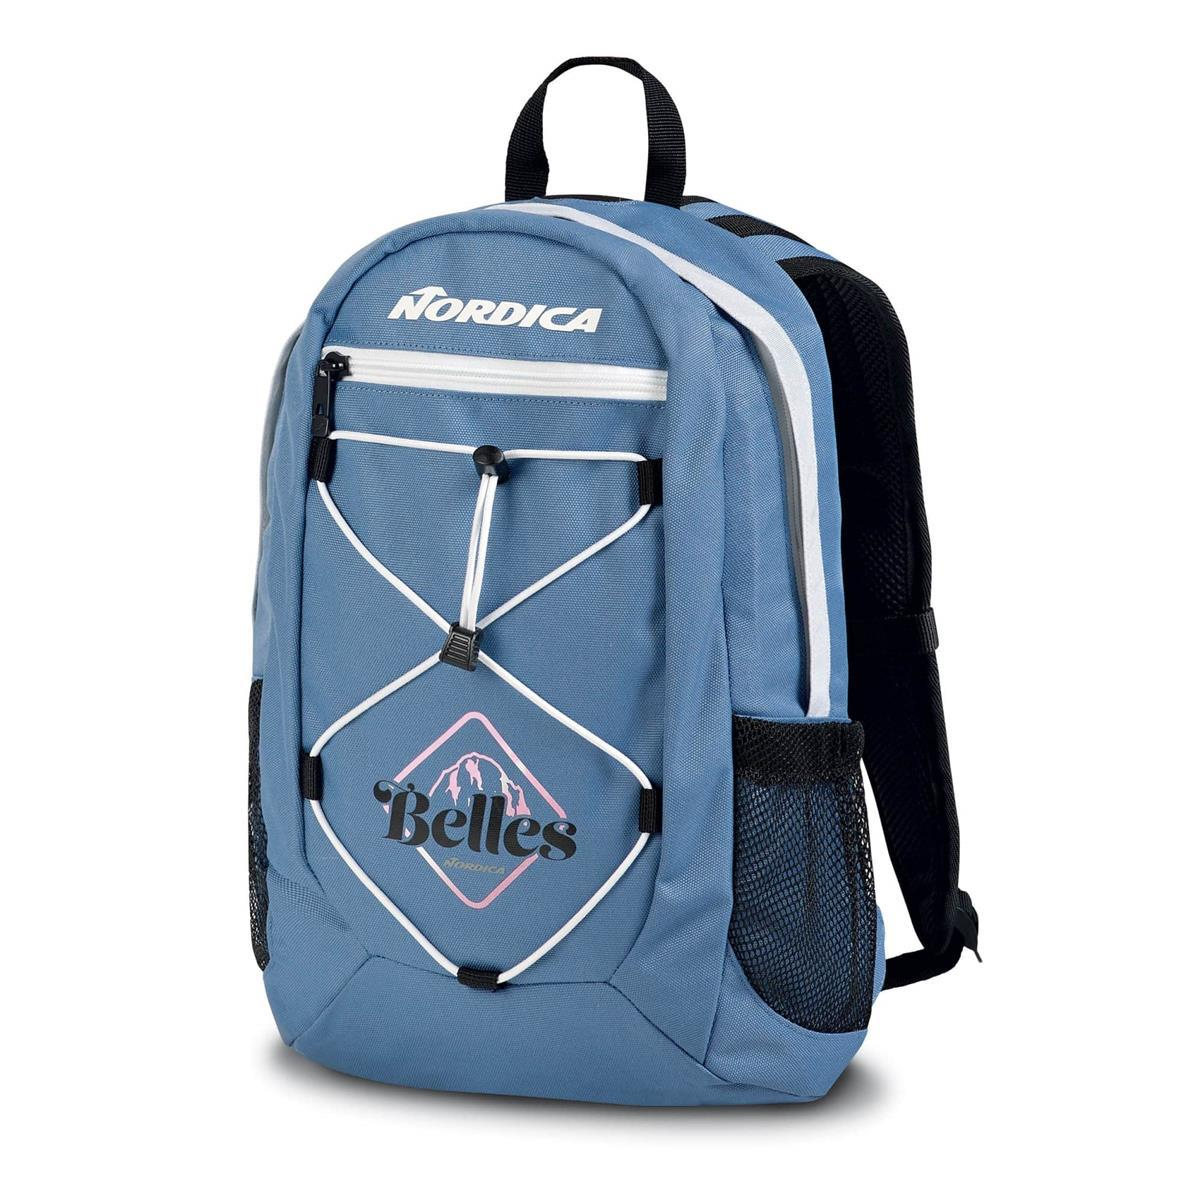 Nordica Belles Backpack